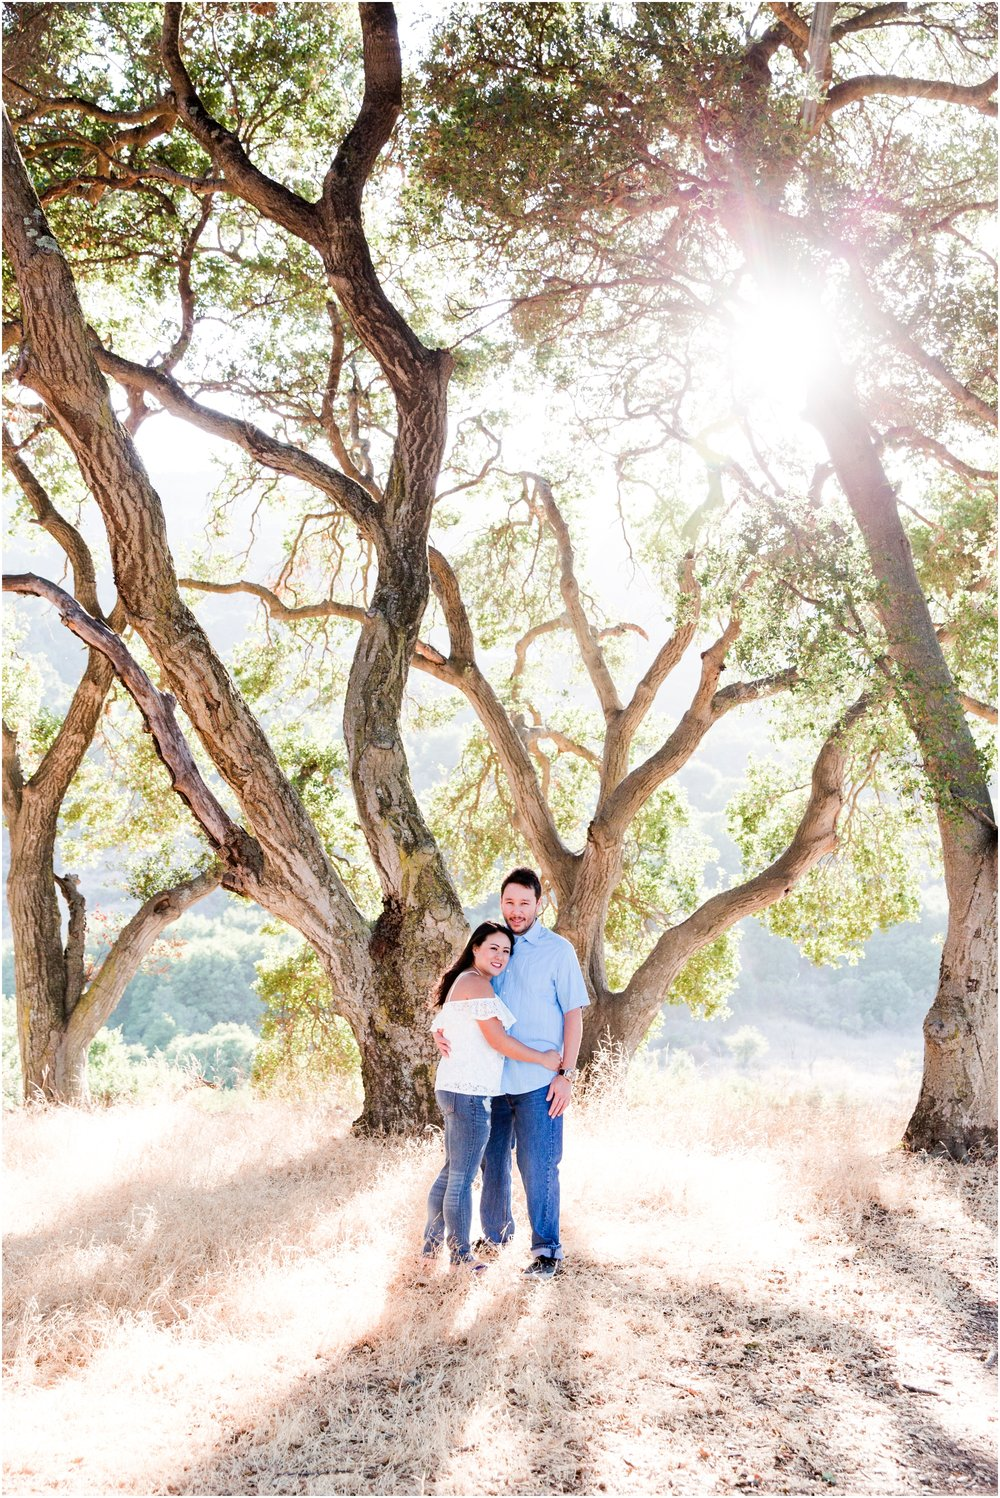 Engagement photos by Briana Calderon Photography based in the Greater Seattle & Tacoma, WA_0633.jpg